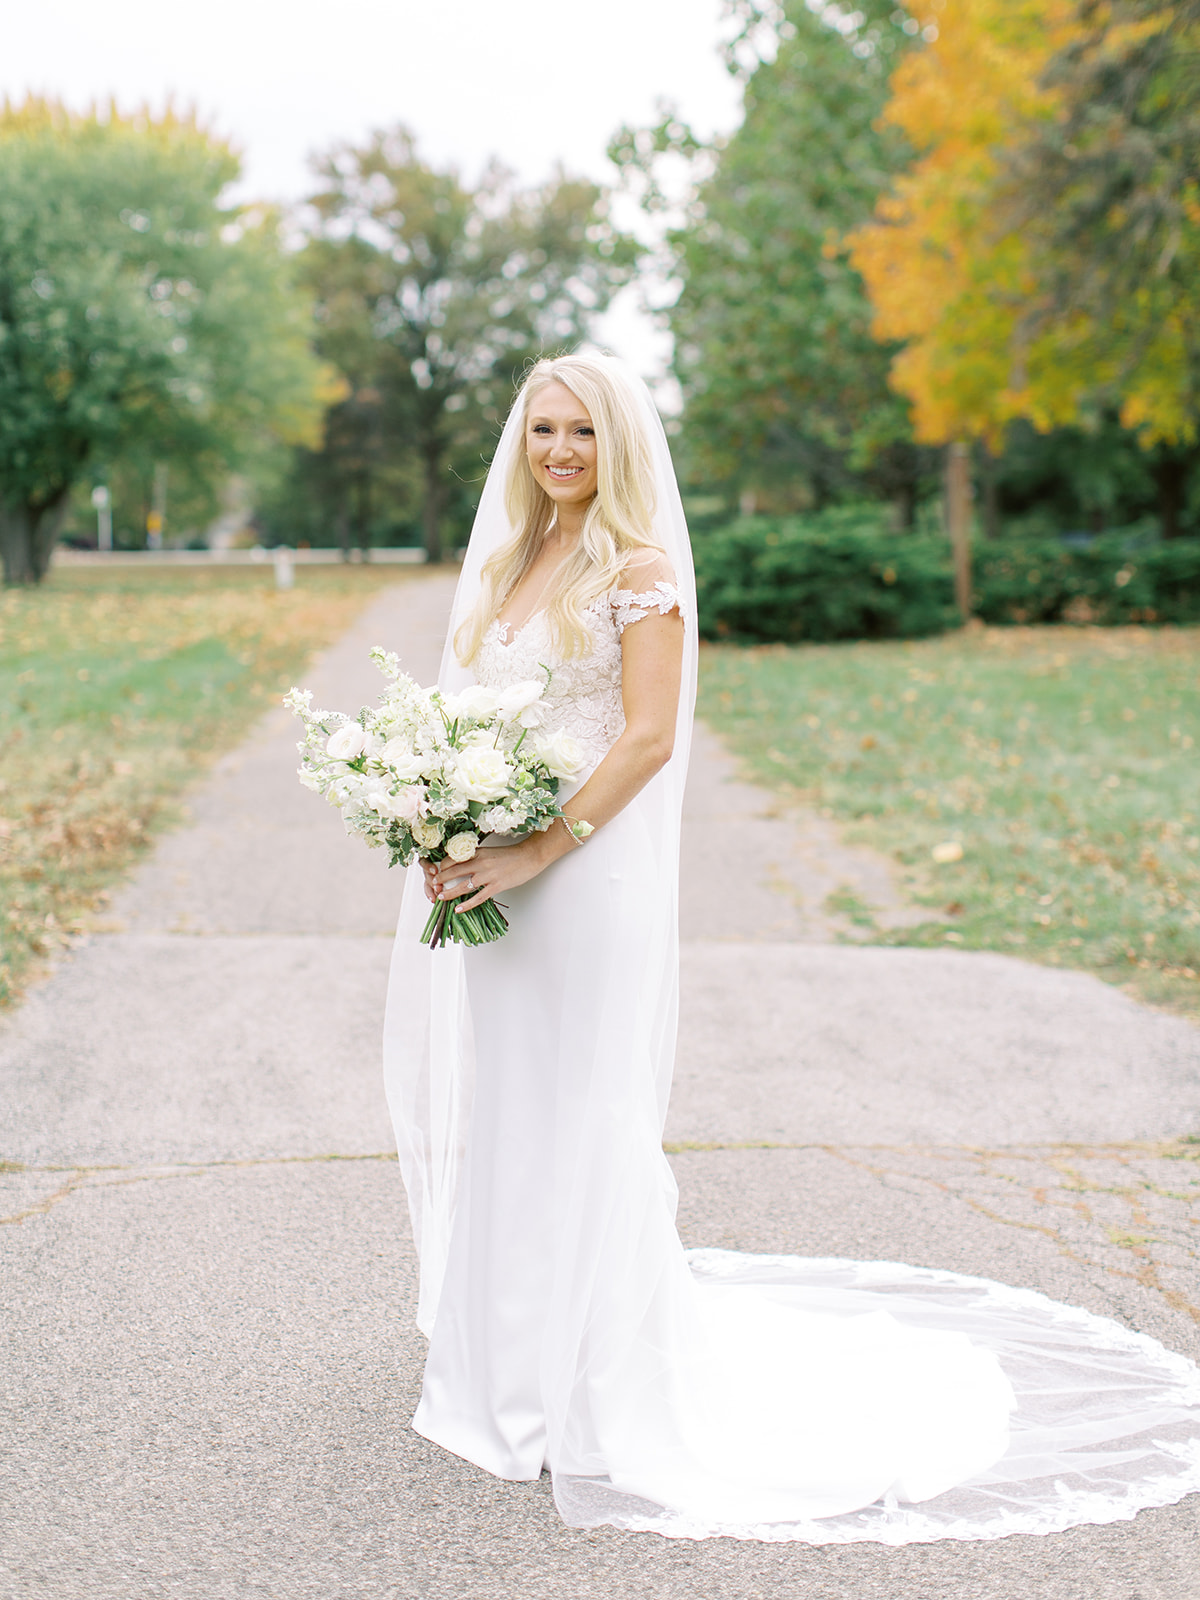 Bride standing in driveway with bouquet before Ritz Charles wedding